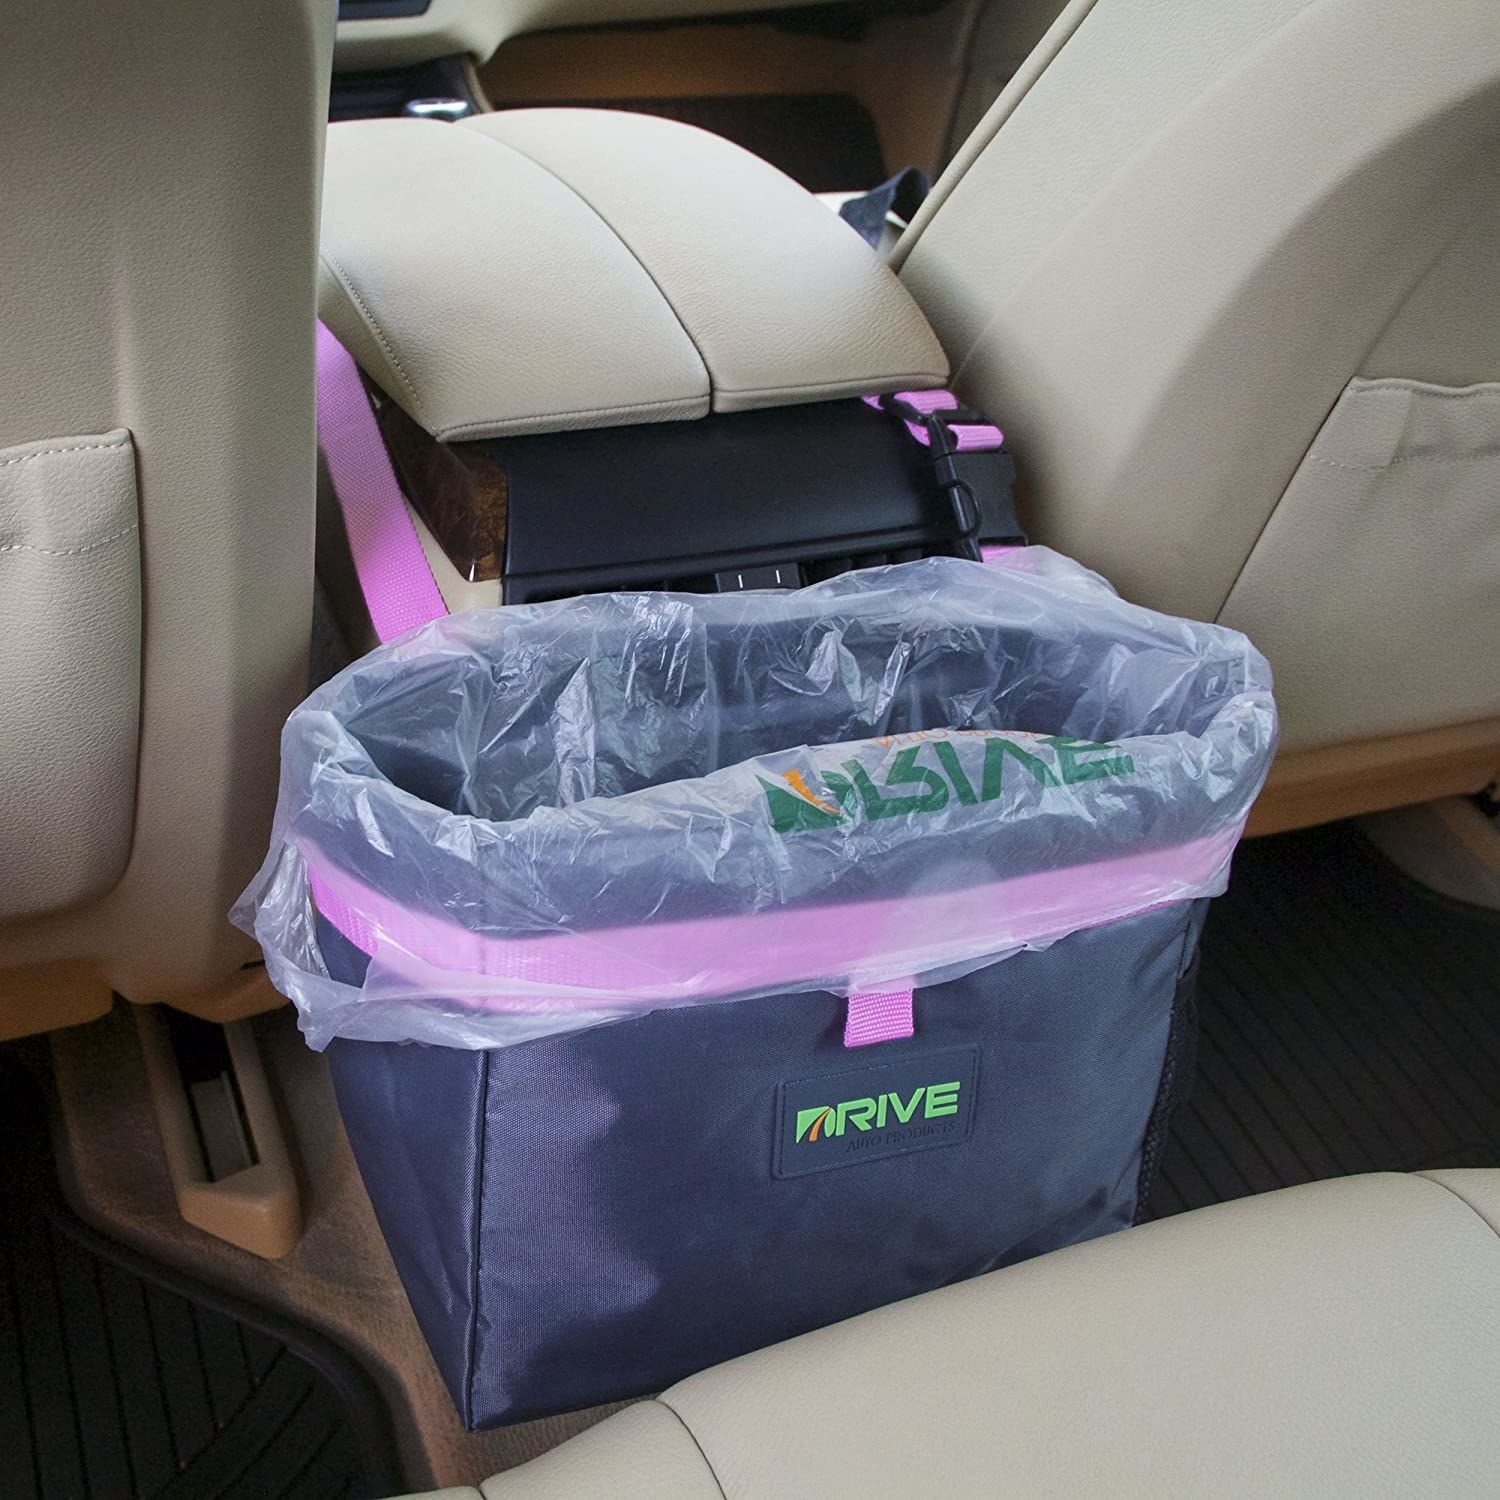 A car garbage bag attached to the centre console of a car